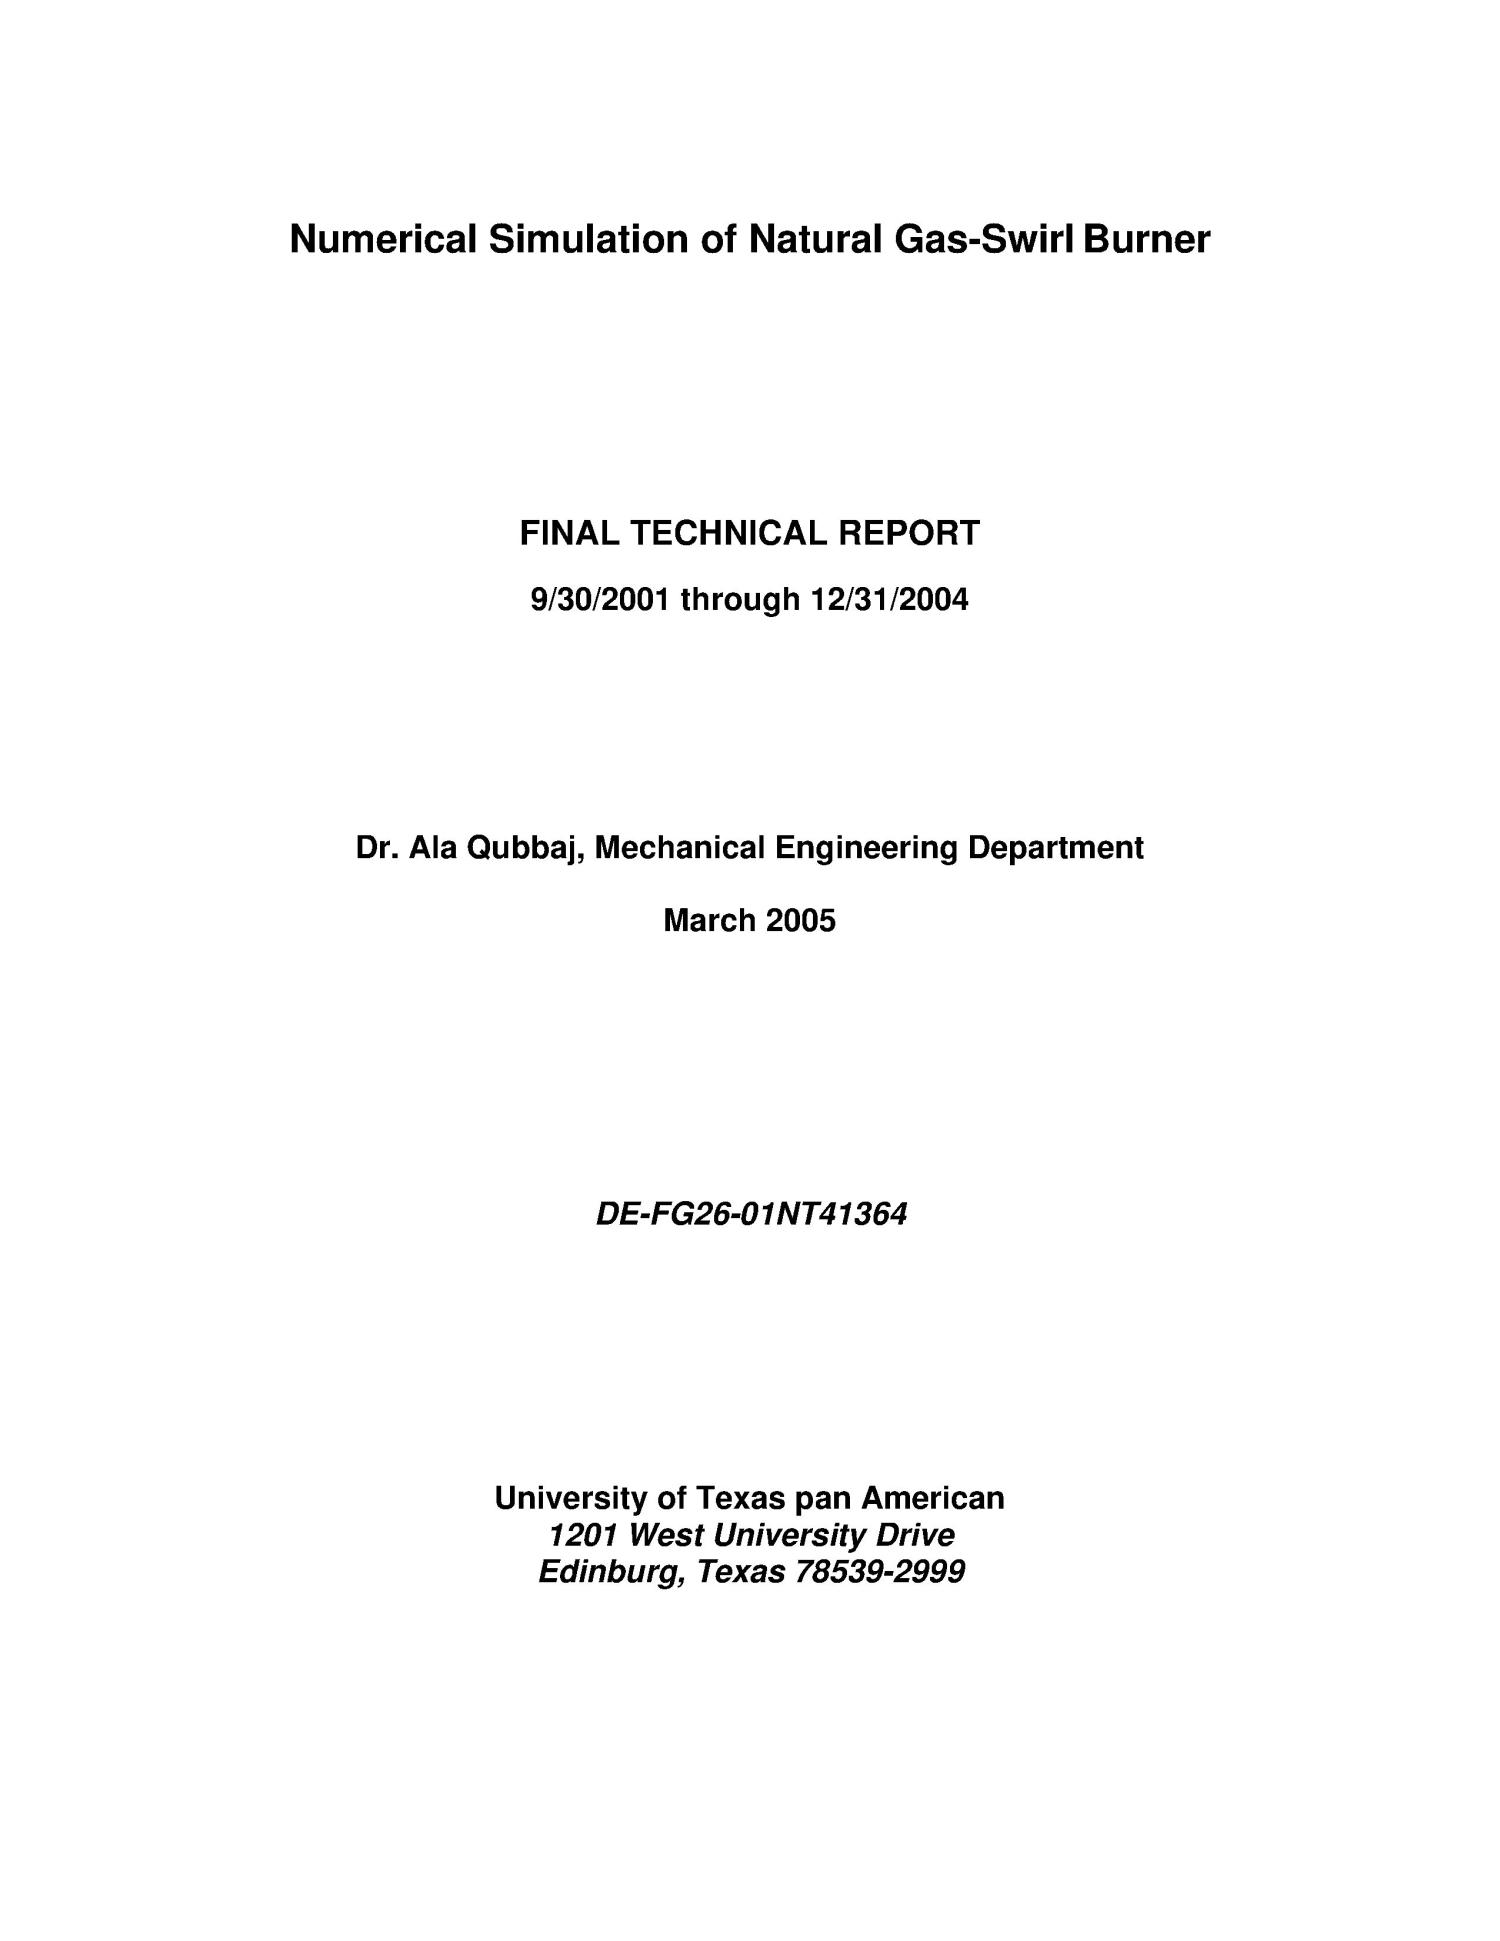 Numerical Simulation of Natural Gas-Swirl Burner                                                                                                      [Sequence #]: 1 of 20